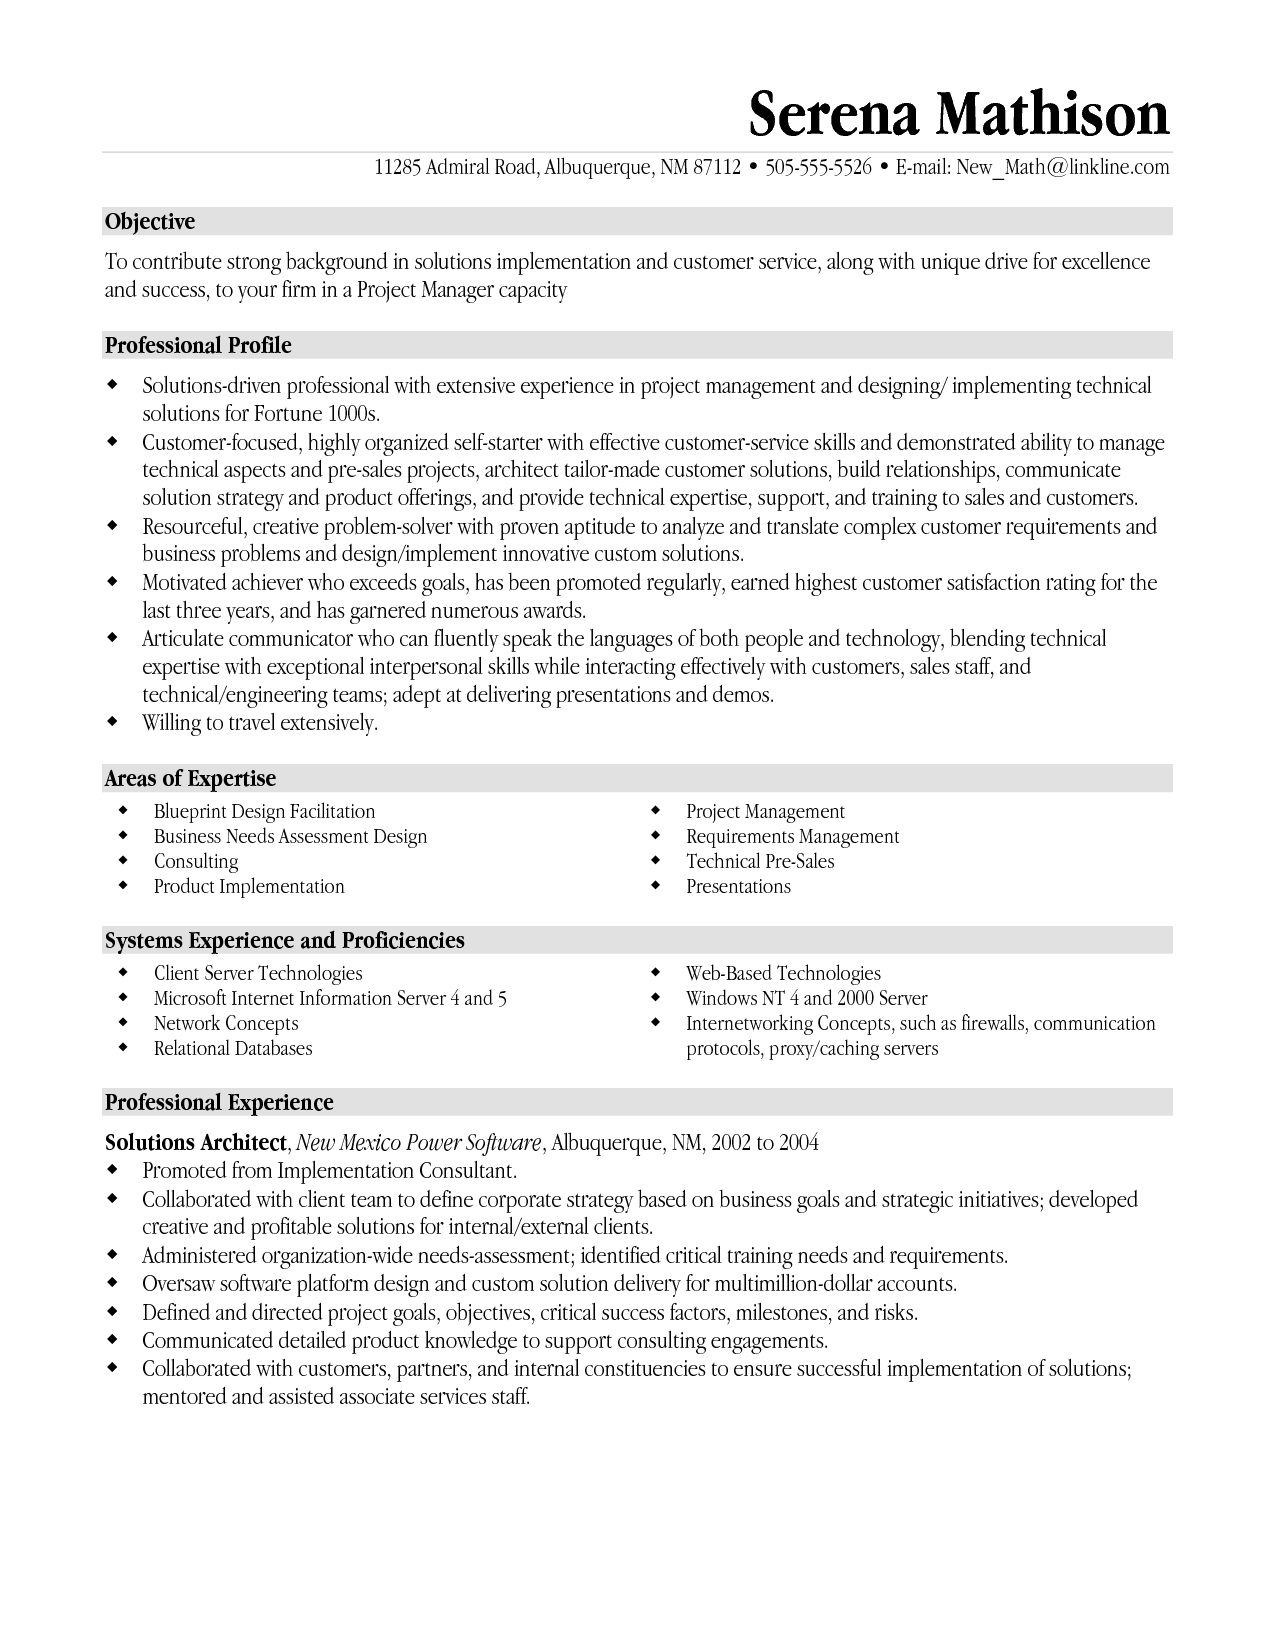 Resume Samples For Project Manager Project Management Resume Samples Free Project  Management Resume .  Examples Of Project Management Resumes